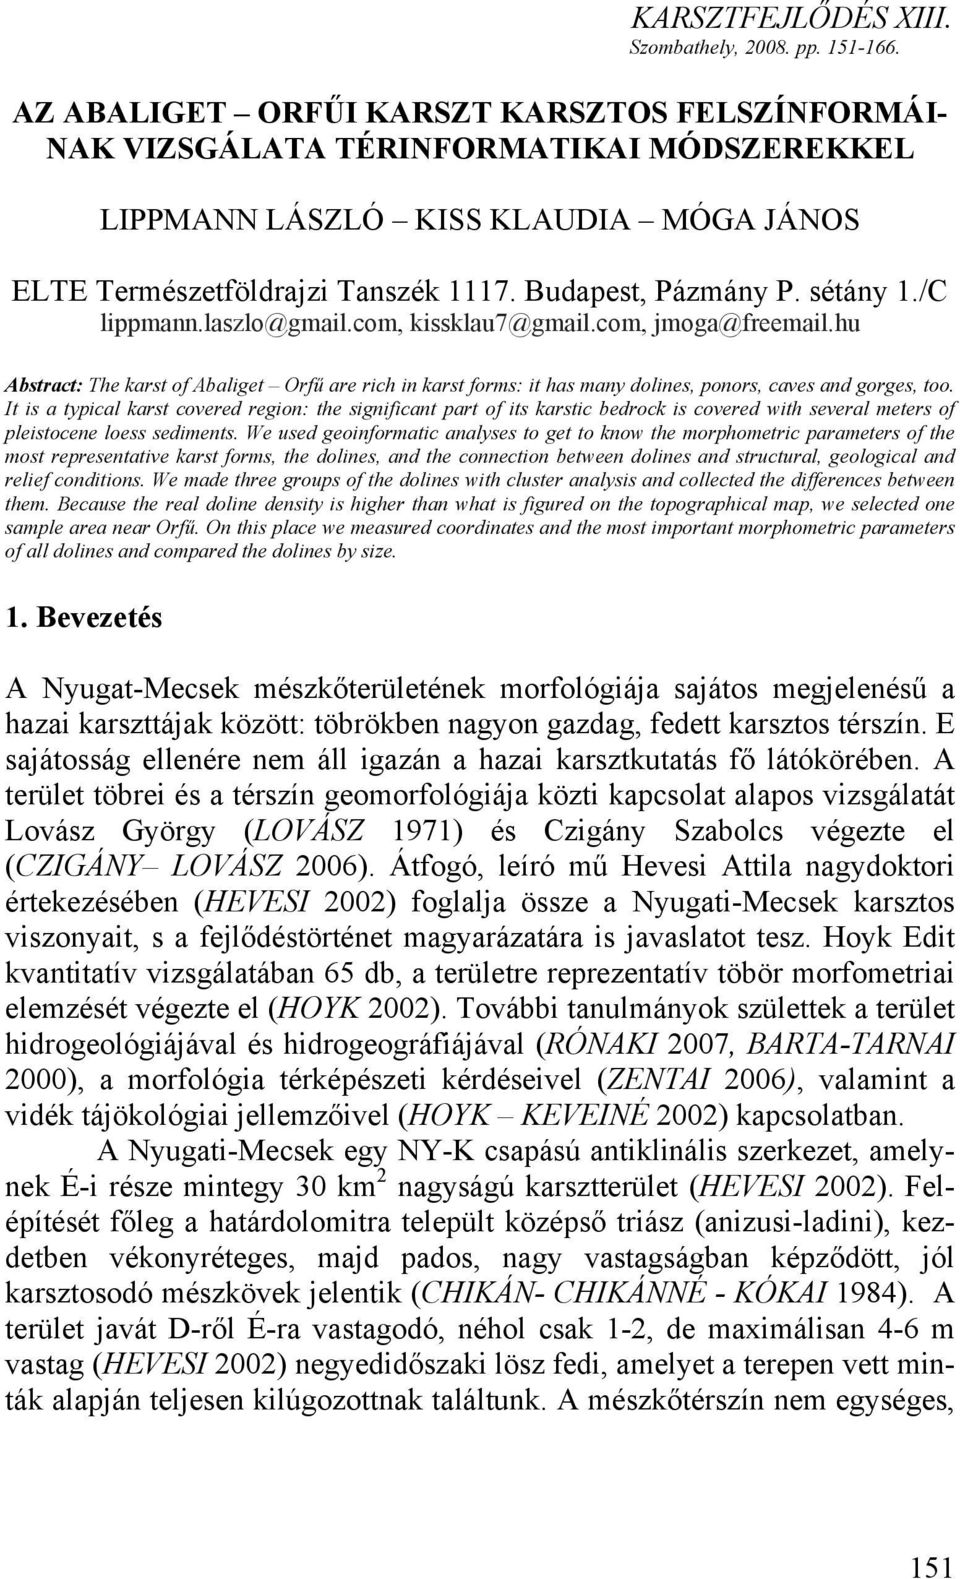 sétány 1./C lippmann.laszlo@gmail.com, kissklau7@gmail.com, jmoga@freemail.hu Abstract: The karst of Abaliget Orfű are rich in karst forms: it has many dolines, ponors, caves and gorges, too.